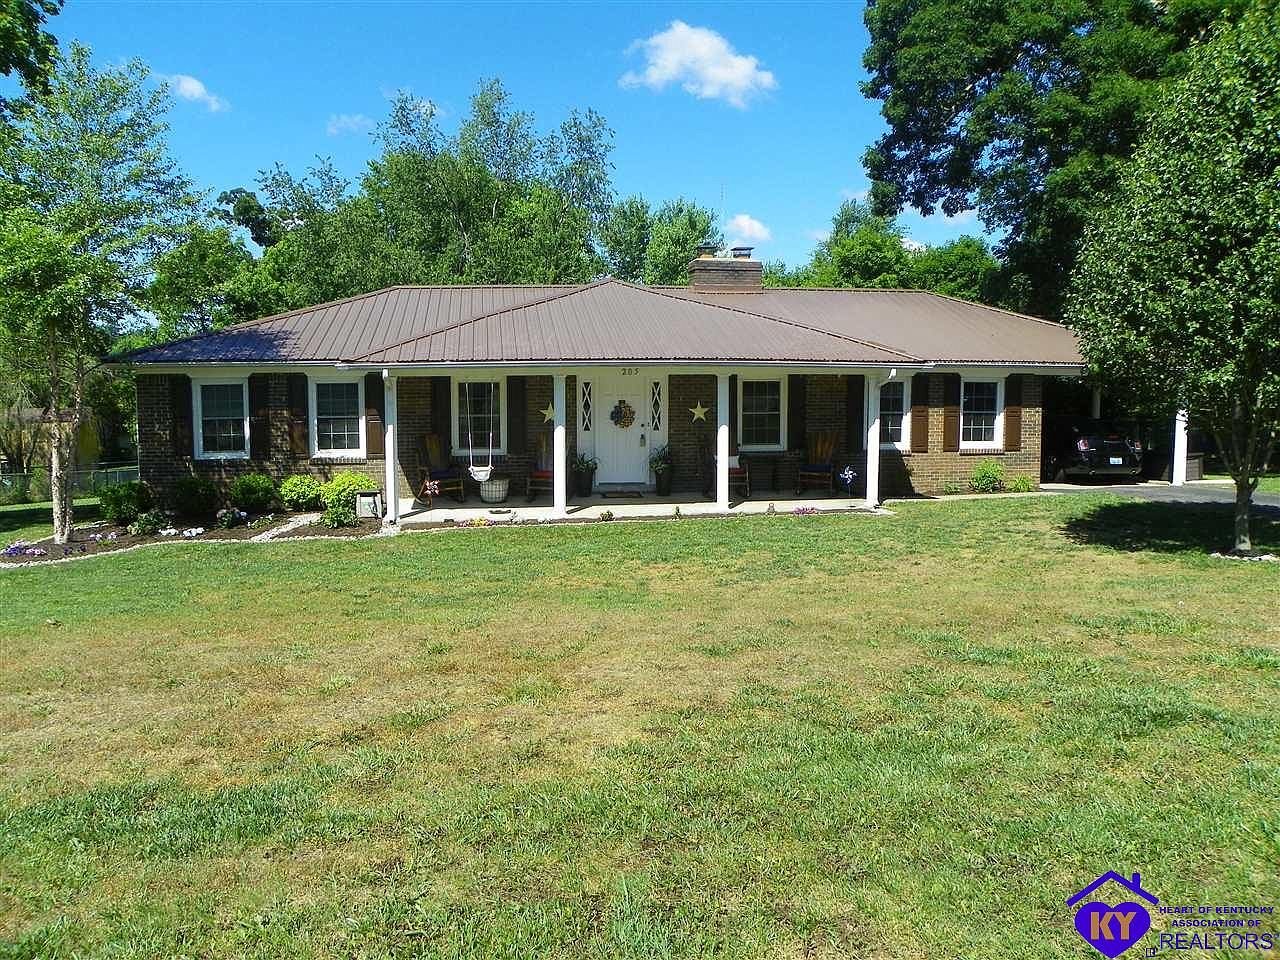 205 Lakewood Dr Elizabethtown Ky 42701 Mls 10052706 Zillow